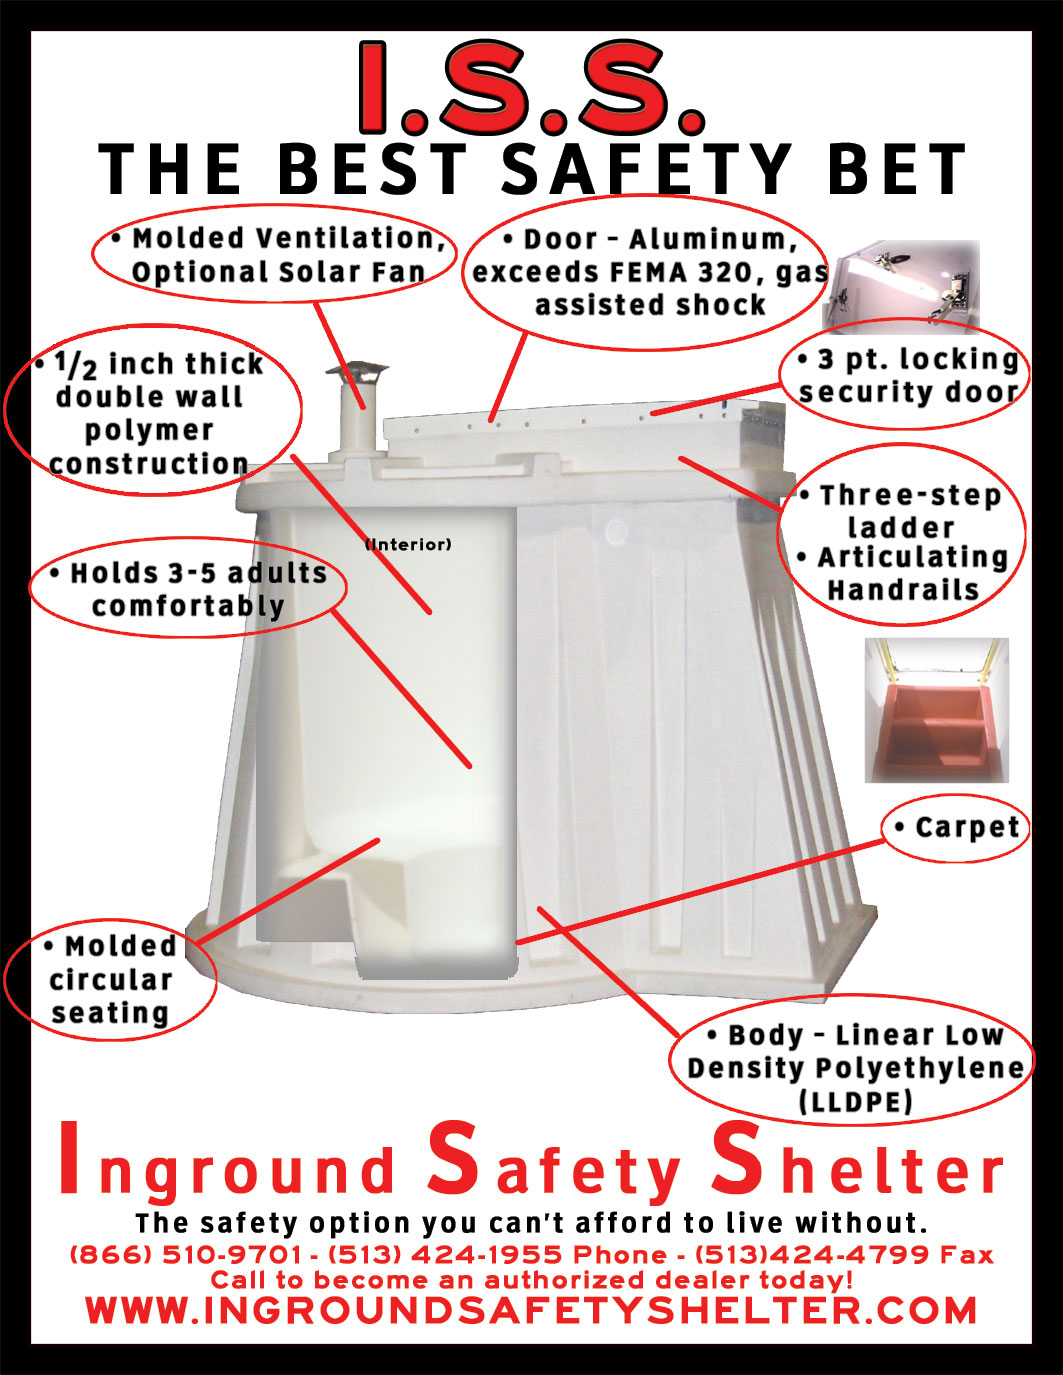 Storm Shelters, Tornado Shelters, Granger ISS, Underground Shelters